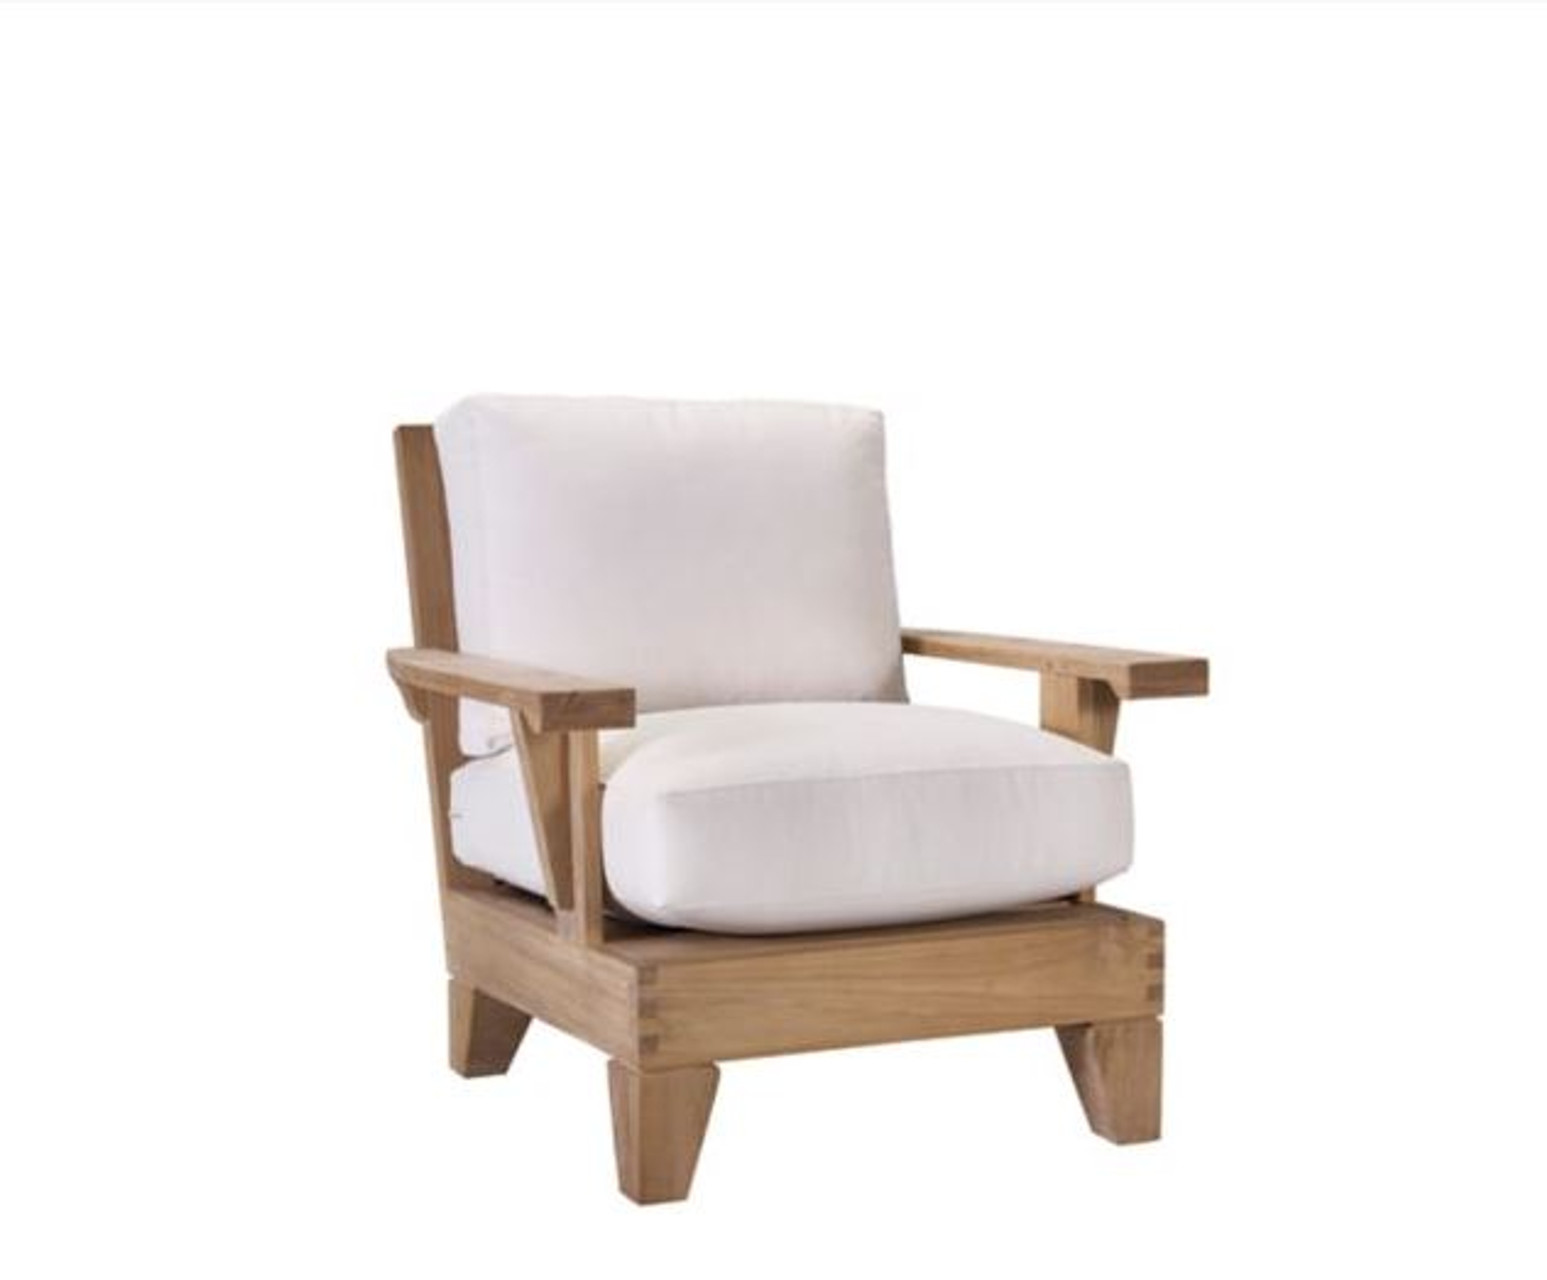 teak lounge chair for 2 year old lane venture saranac outdoor trees n trends home fashion more